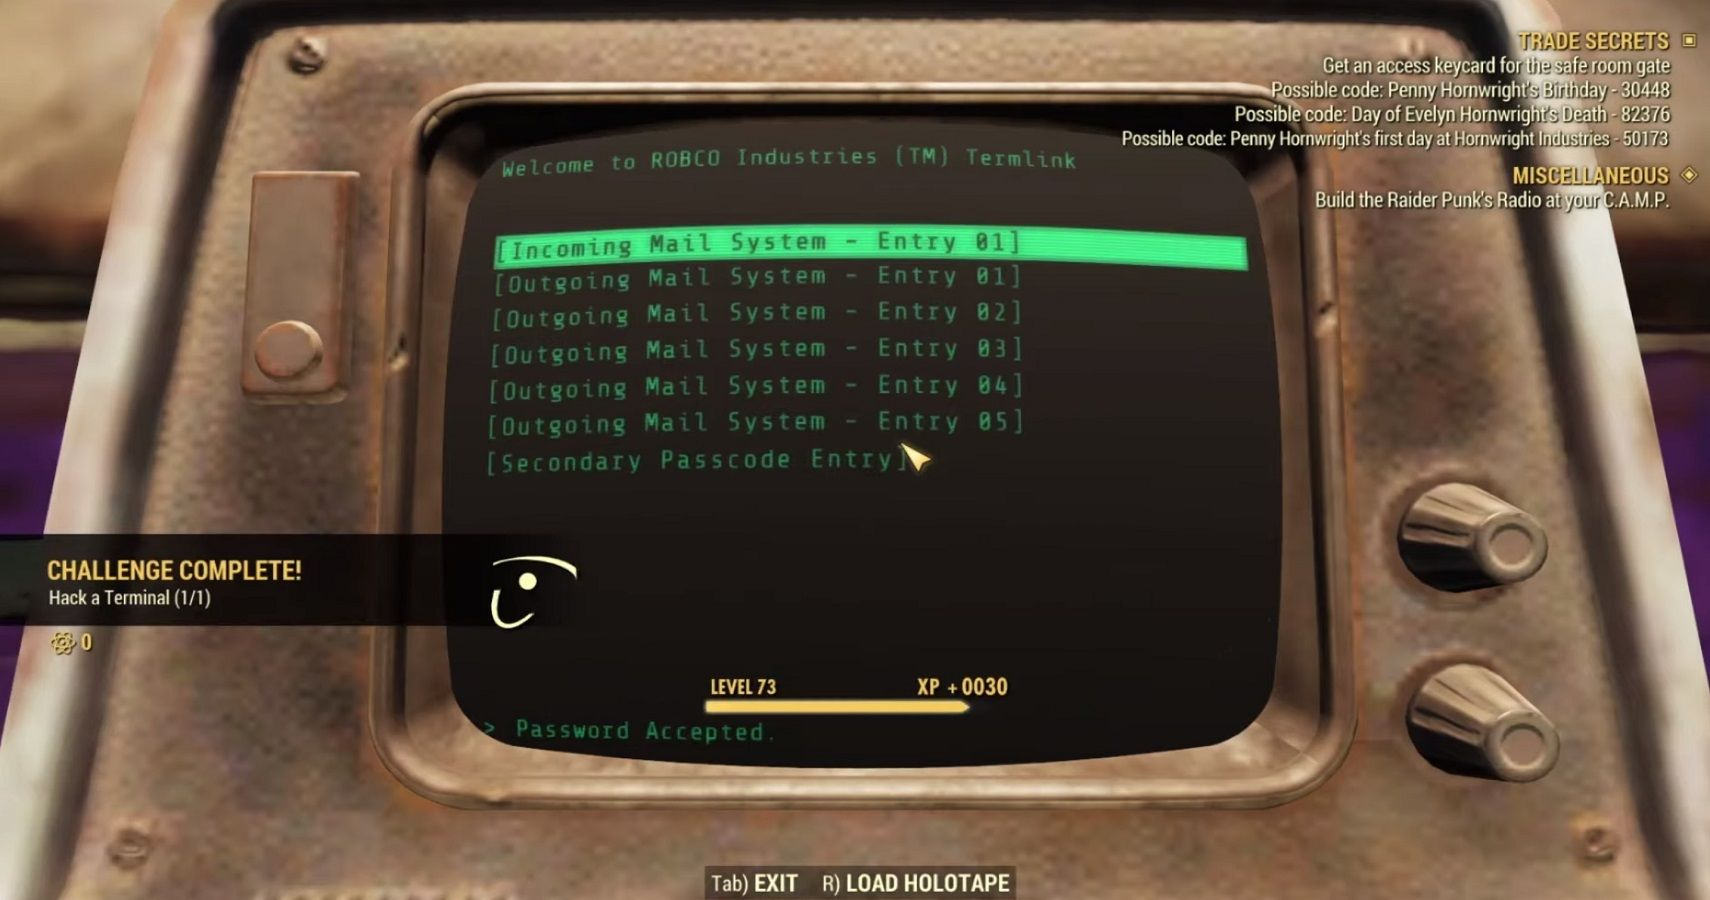 Fallout 76: Find All Keycard Clues In Trade Secrets